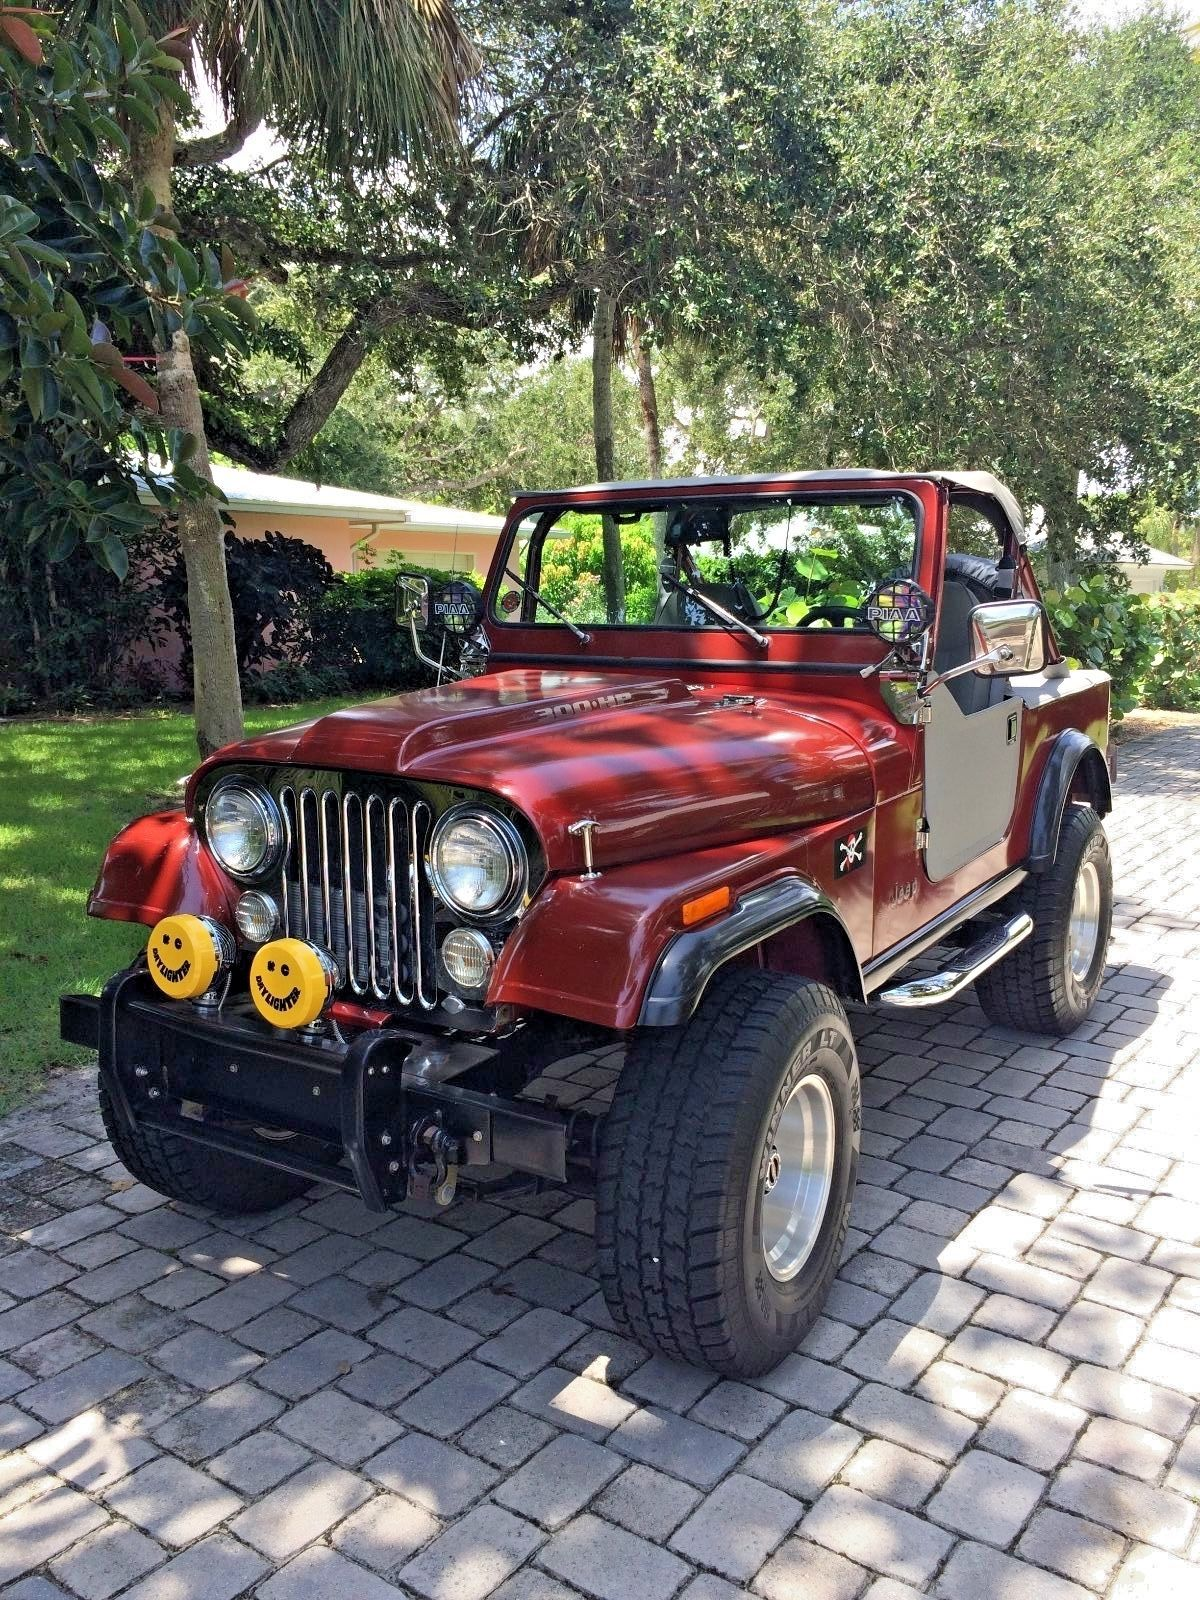 Resto update 1980 Jeep monster for sale